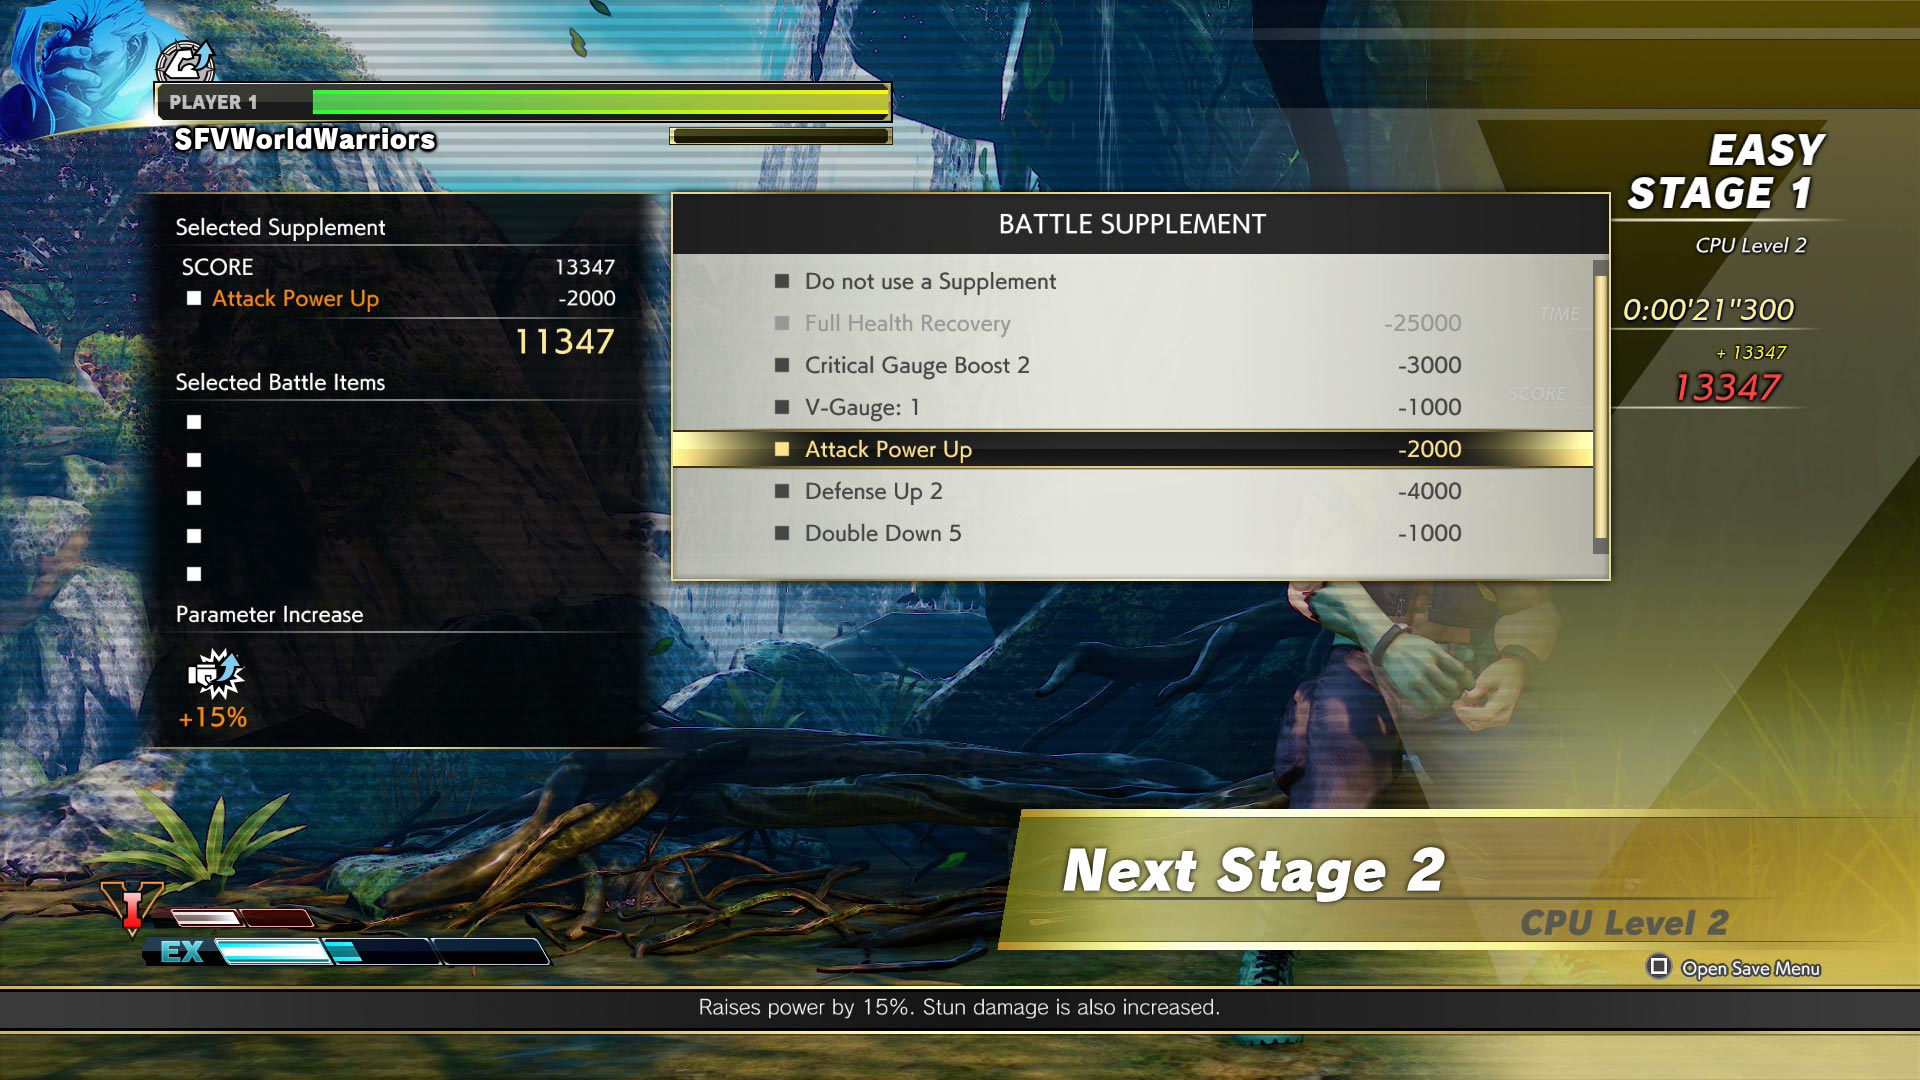 Devil May Cry, Air Man costumes, Survival mode changes in Street Fighter 5 11 out of 14 image gallery